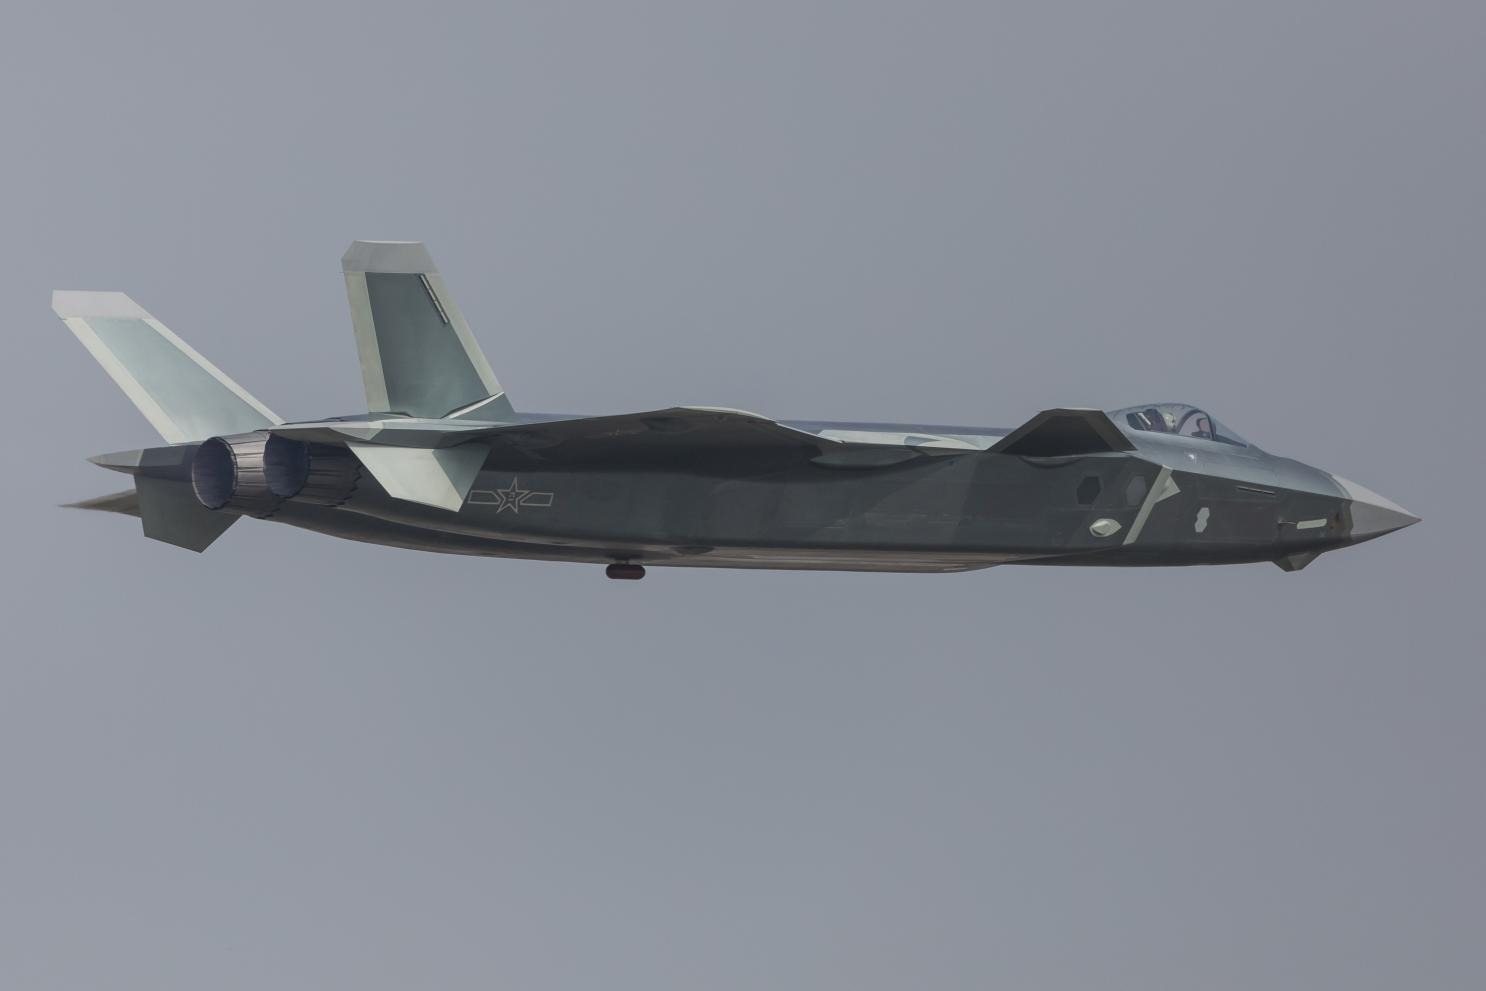 Chinese Fighters Are No Match for an F-22 or F-35 - Warrior Maven